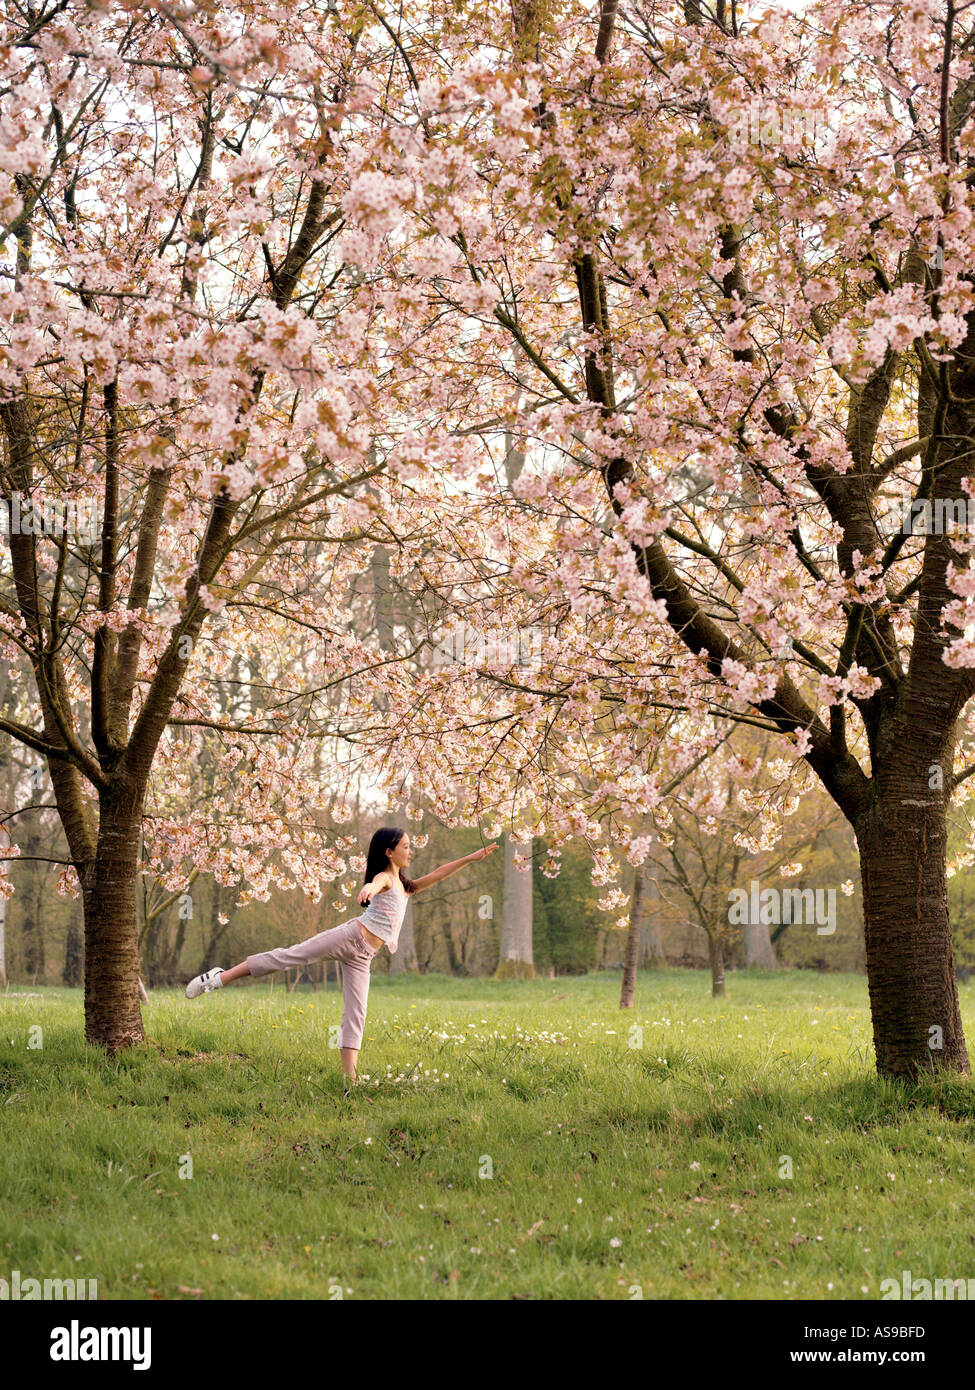 young girl dancing in cherry wood in blossom - Stock Image